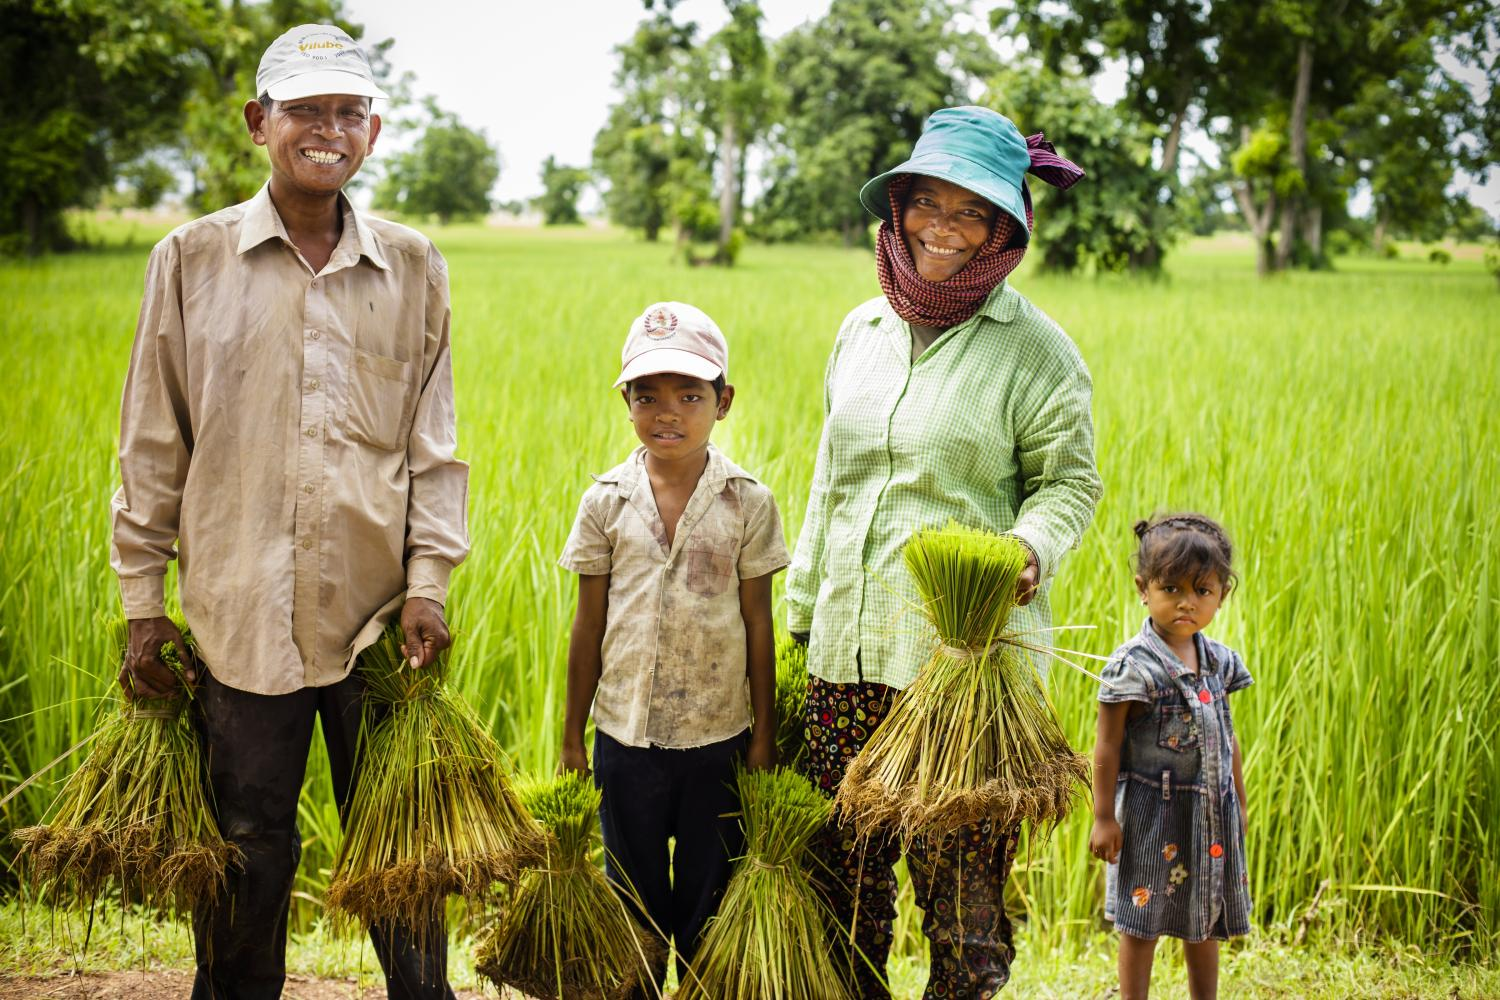 Cambodian farmers are increasing their yields as well as their incomes with help from Feed the Future. The whole family benefits from the added income and nutrition. (Fintrac Inc.)